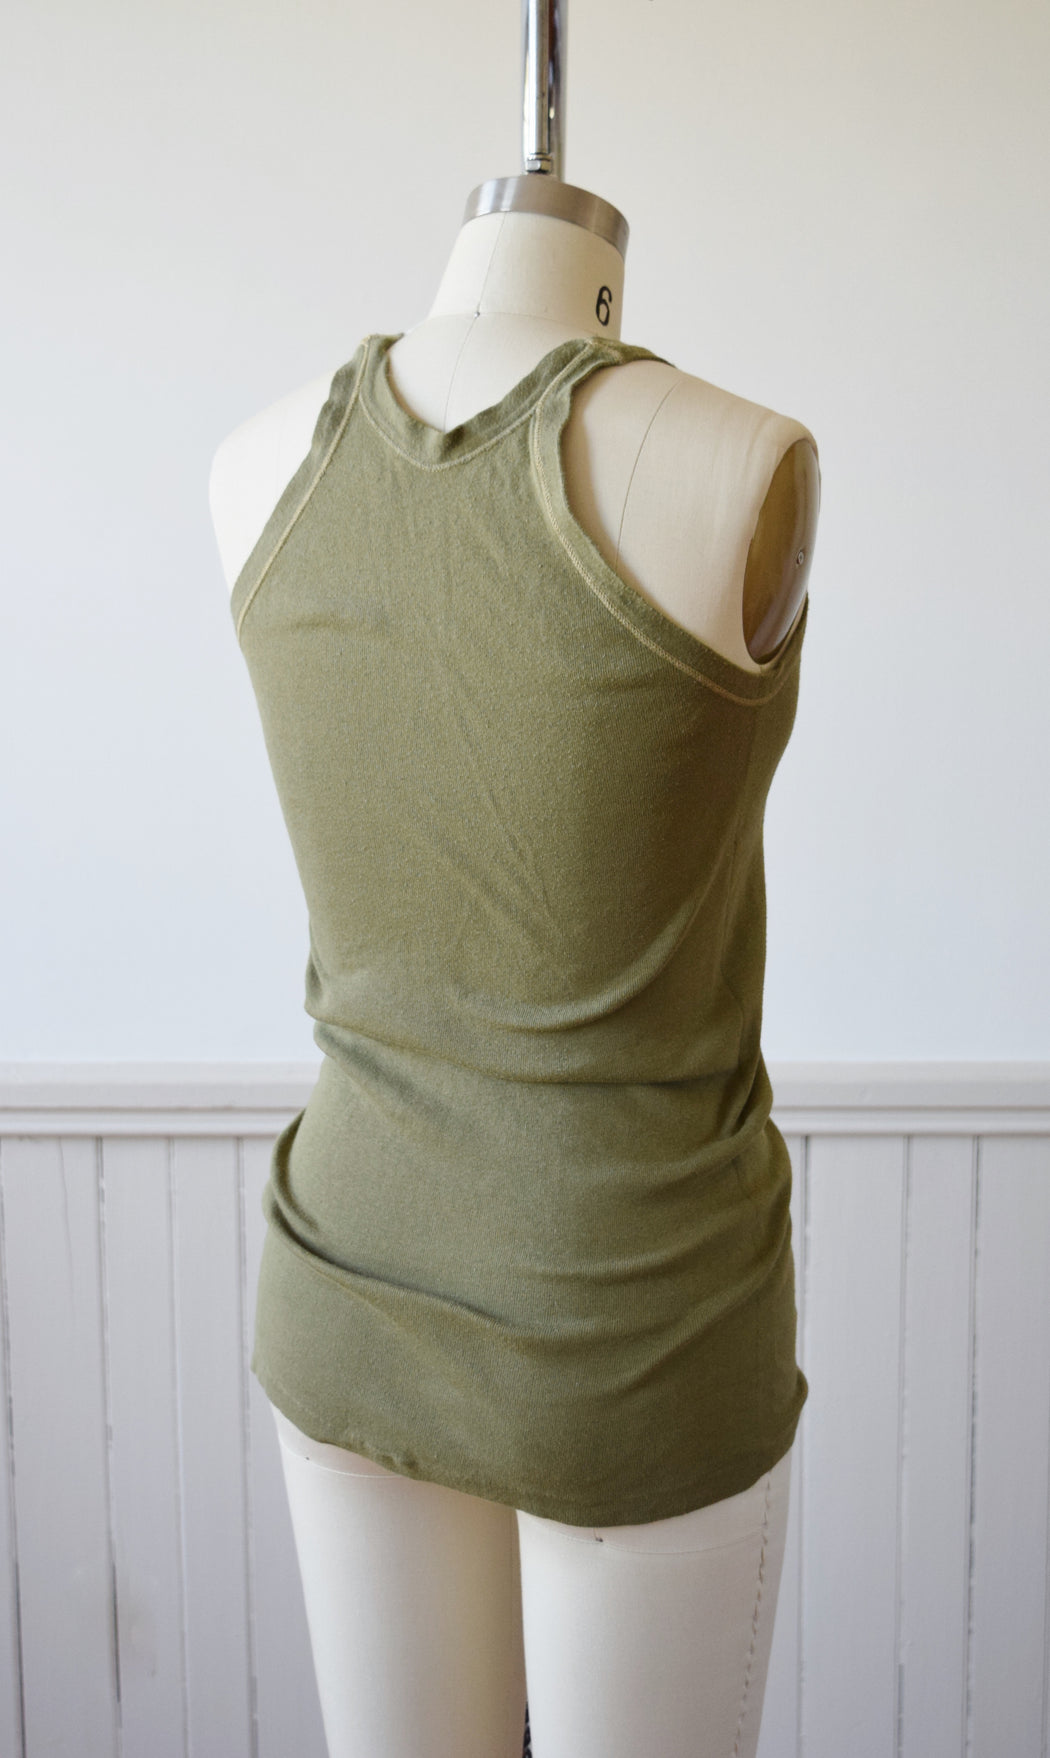 Army Issue Rib Knit Tank | 1940s | 6 | XS/S